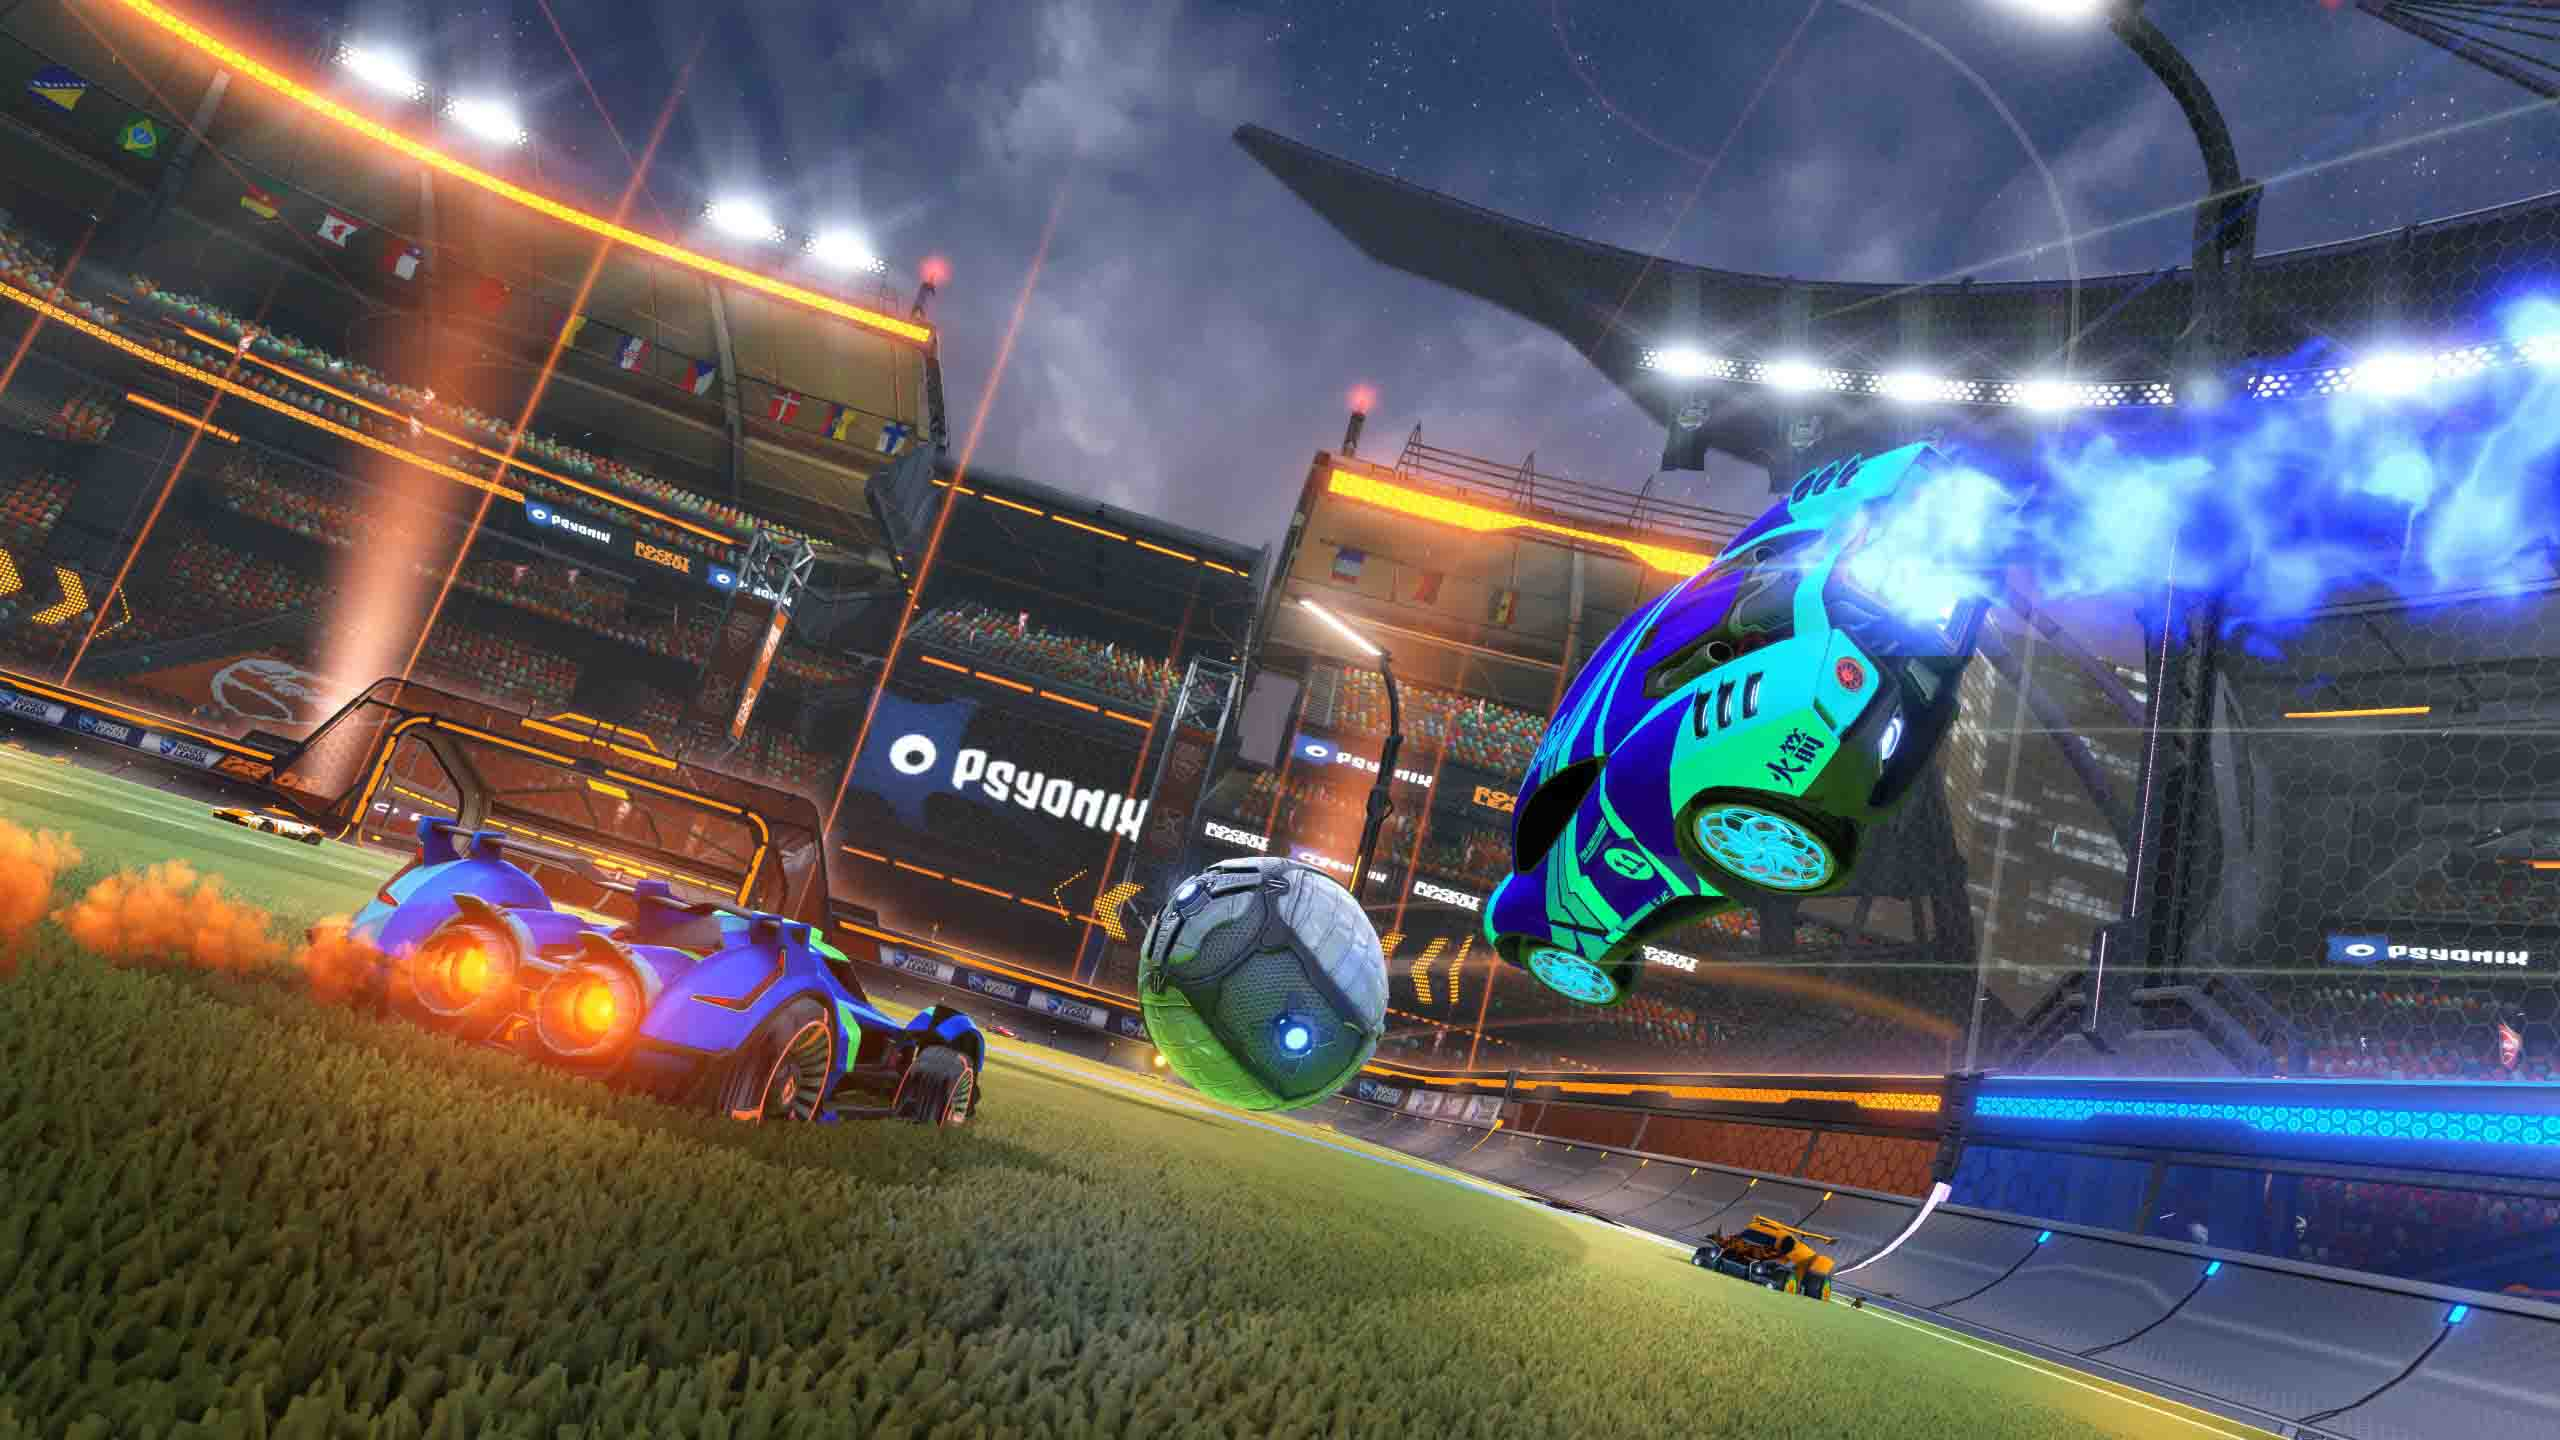 Rocket League Multiplayer Mode is going Offline for macOs and Linux users